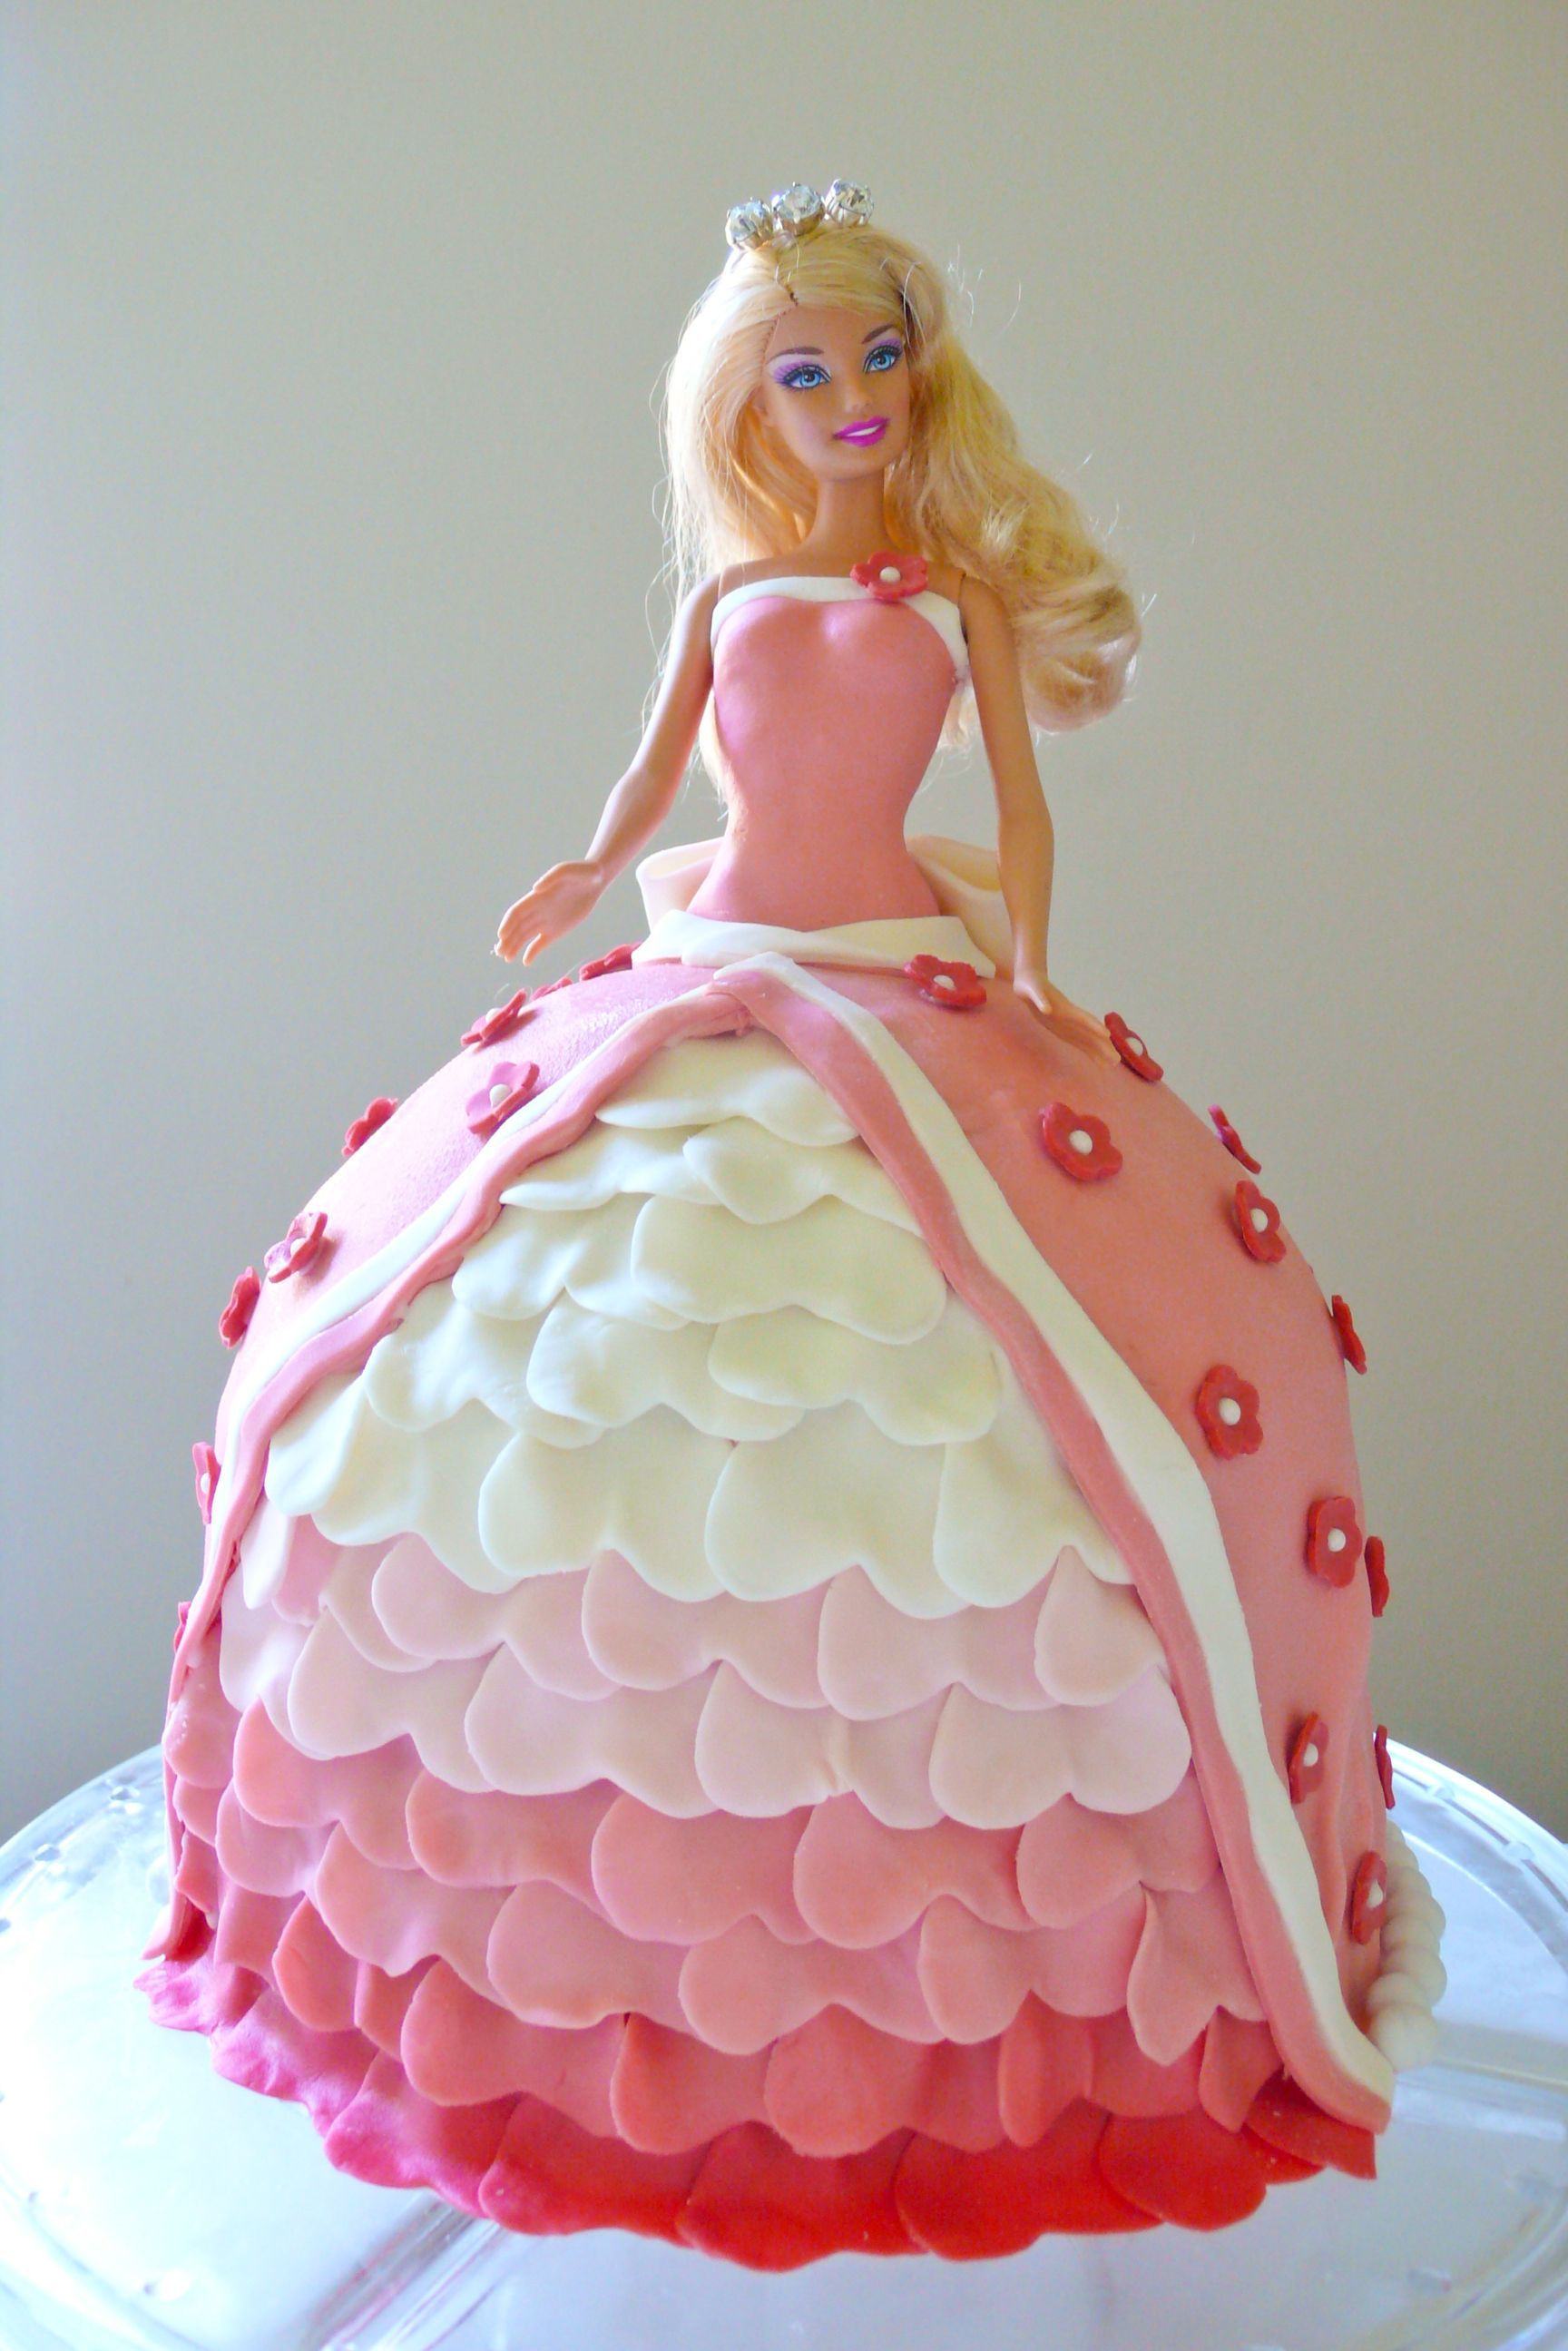 Enjoyable Dream Princess Doll Cake For Every Little Girl And Some Ex Little Birthday Cards Printable Riciscafe Filternl